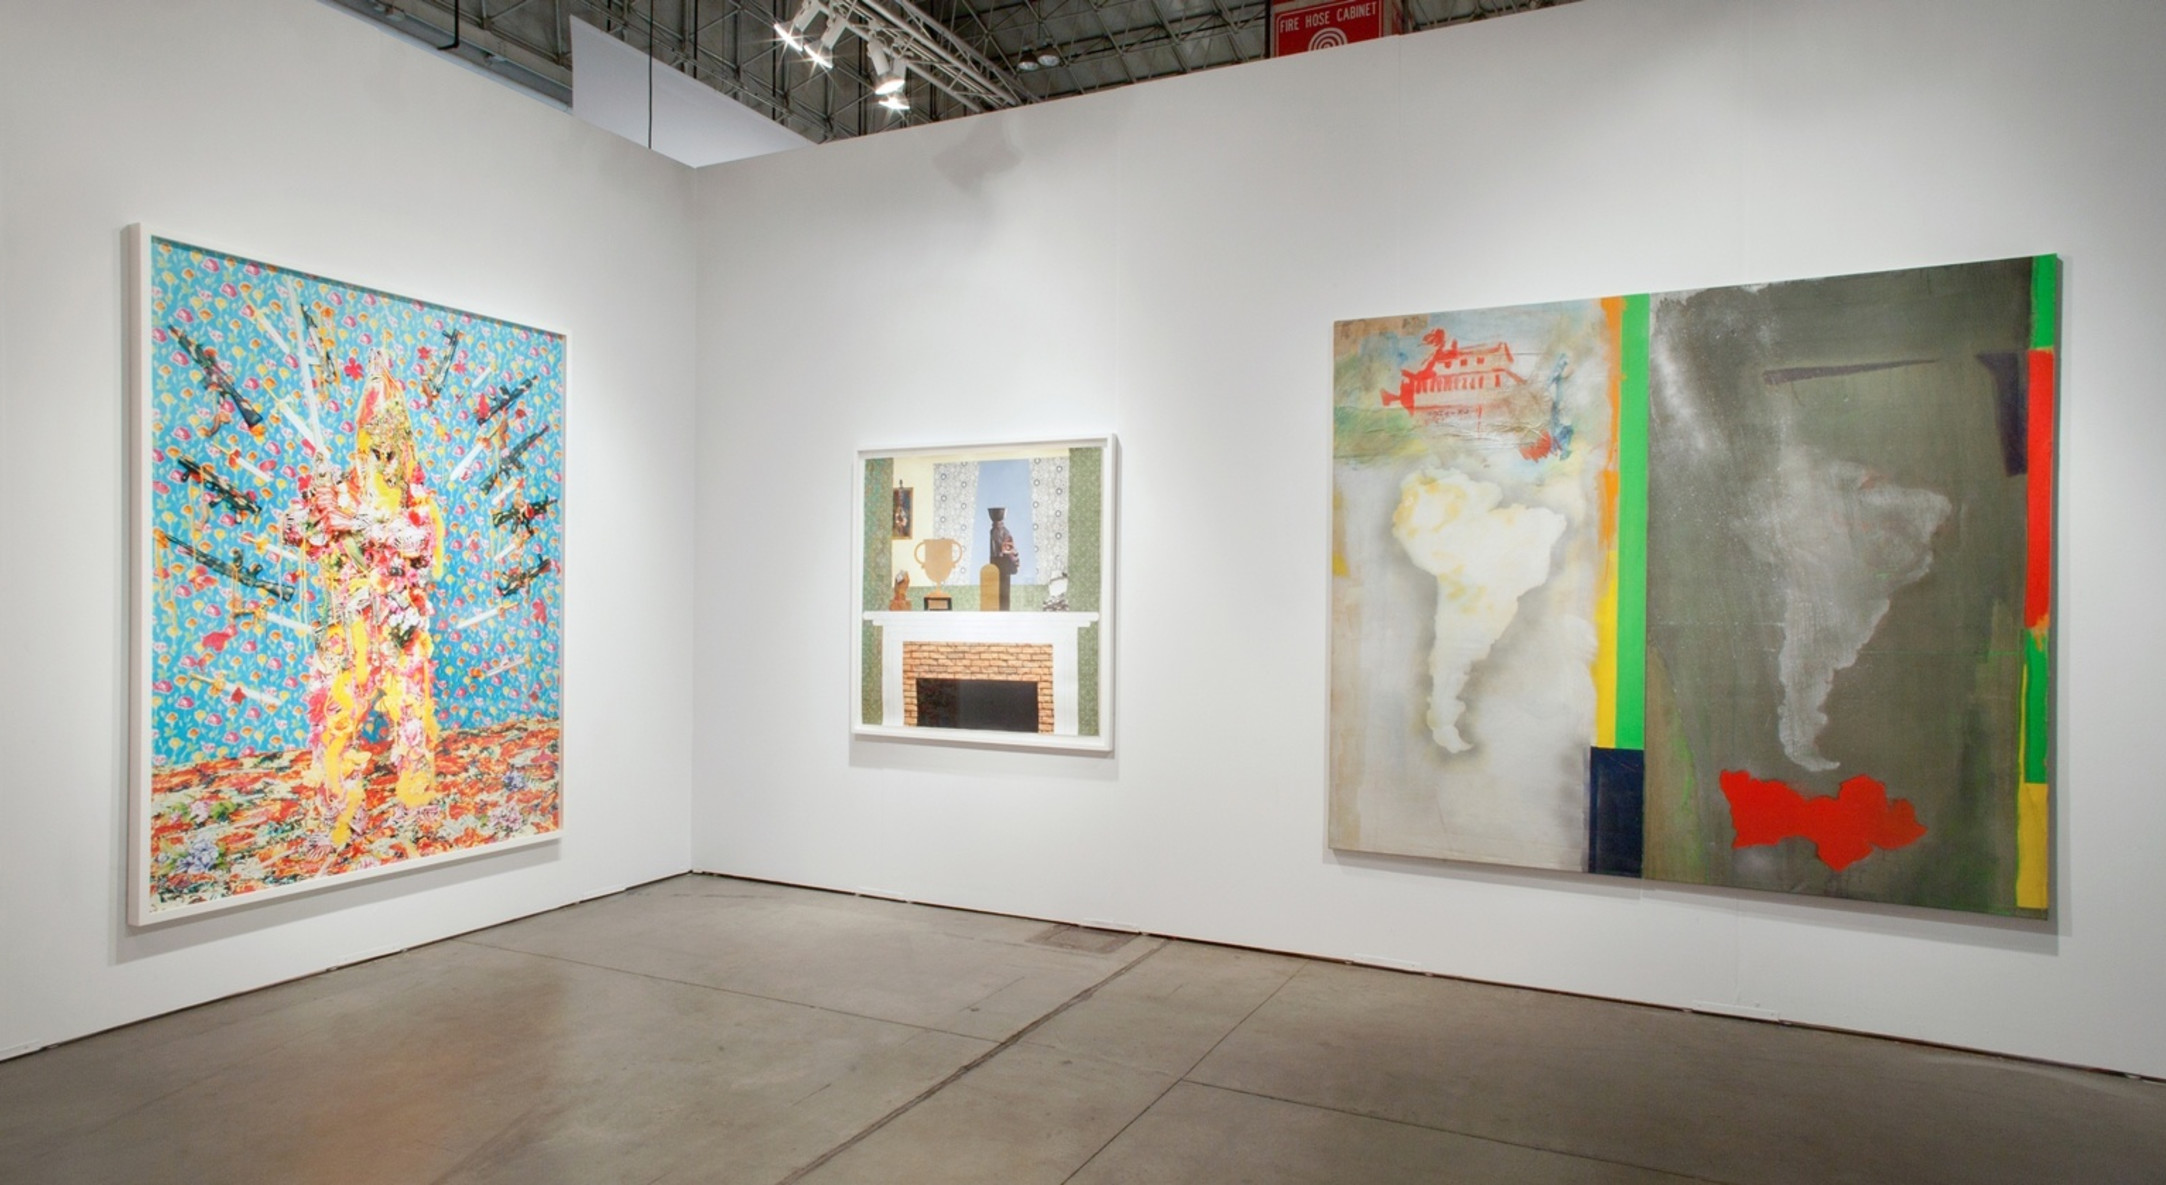 Installation view of Hales Gallery at EXPO Chicago 2014